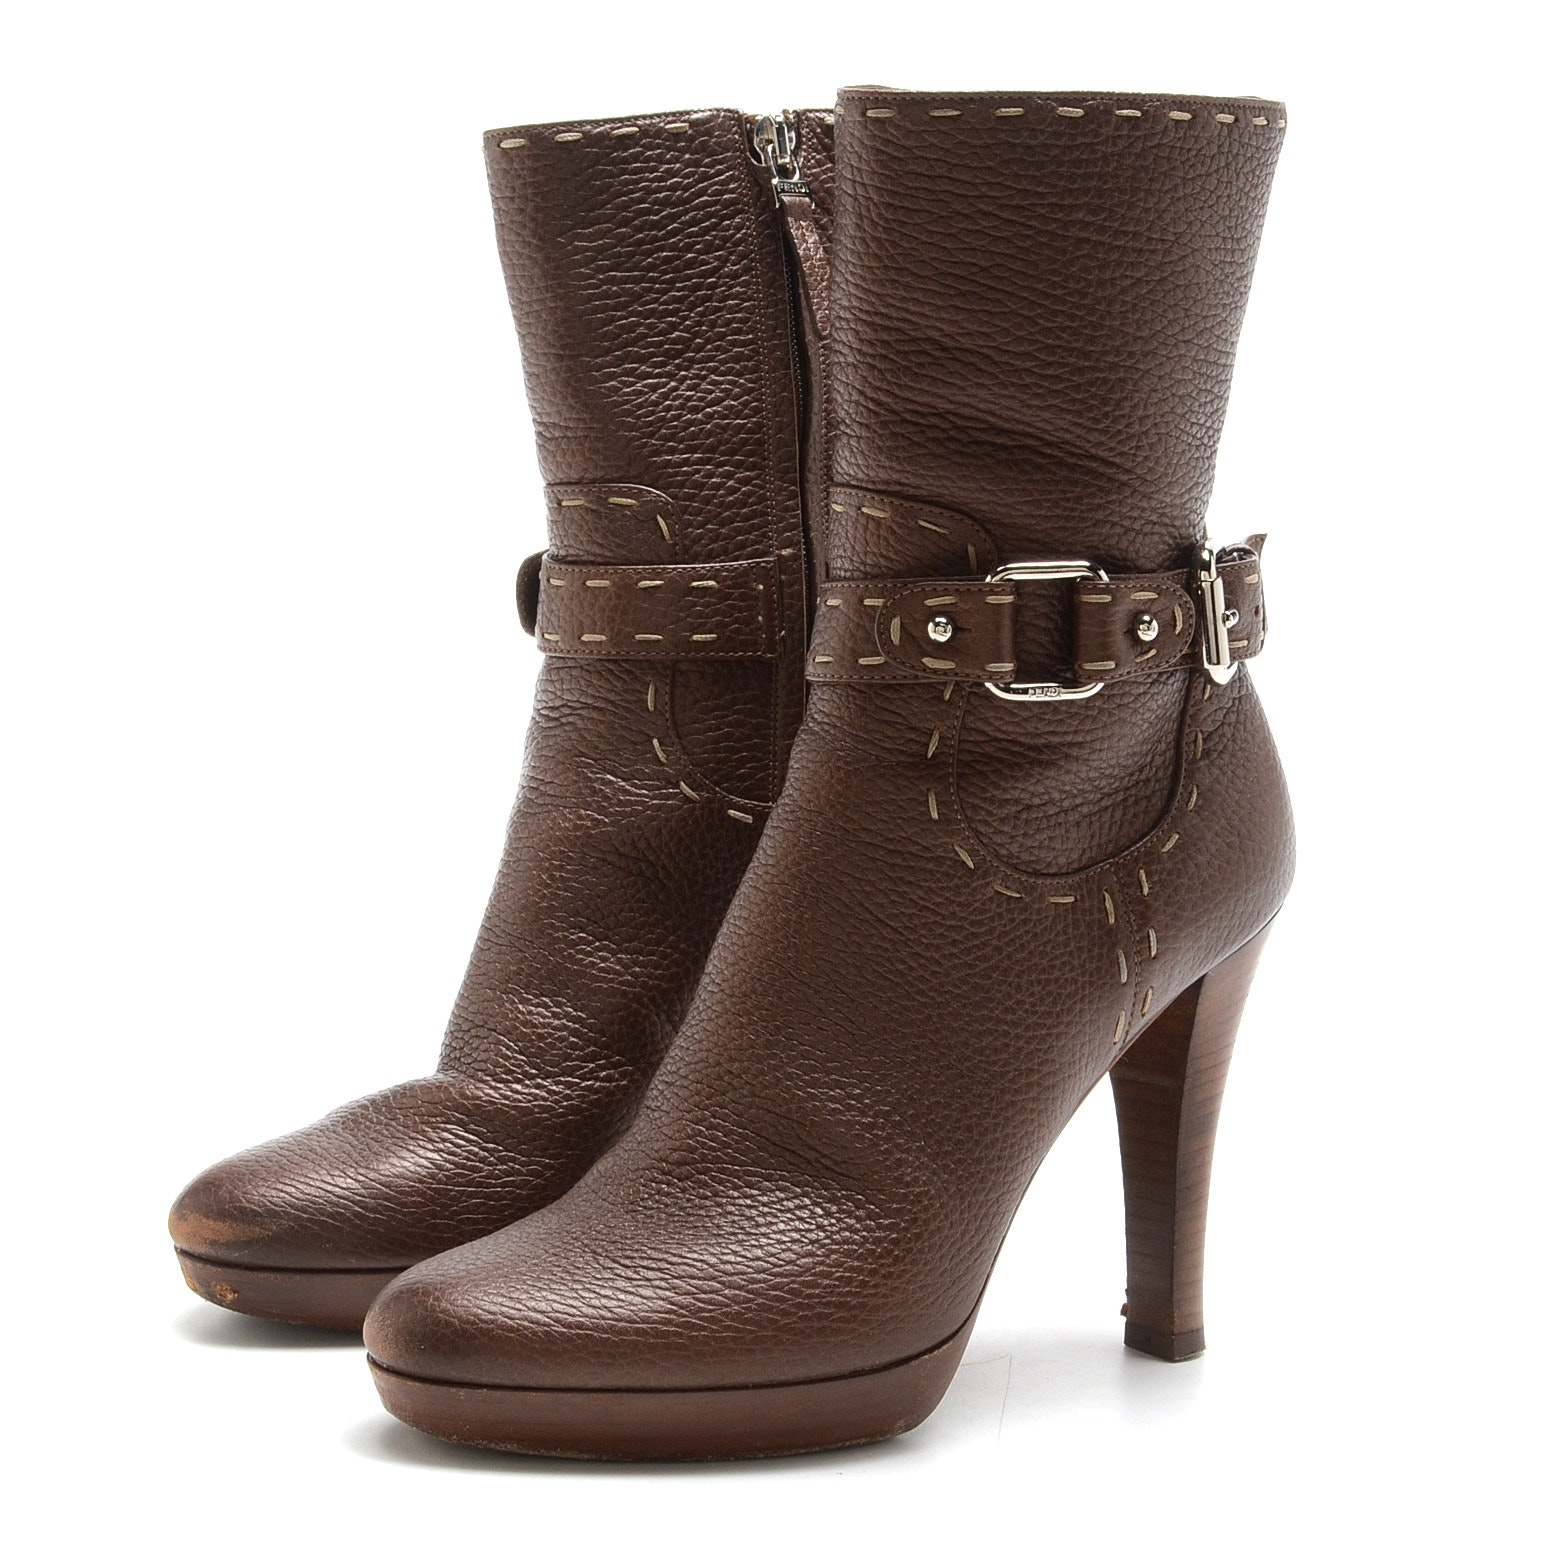 Fendi Brown Pebbled Leather Platform Booties with Buckled Ankle Strap